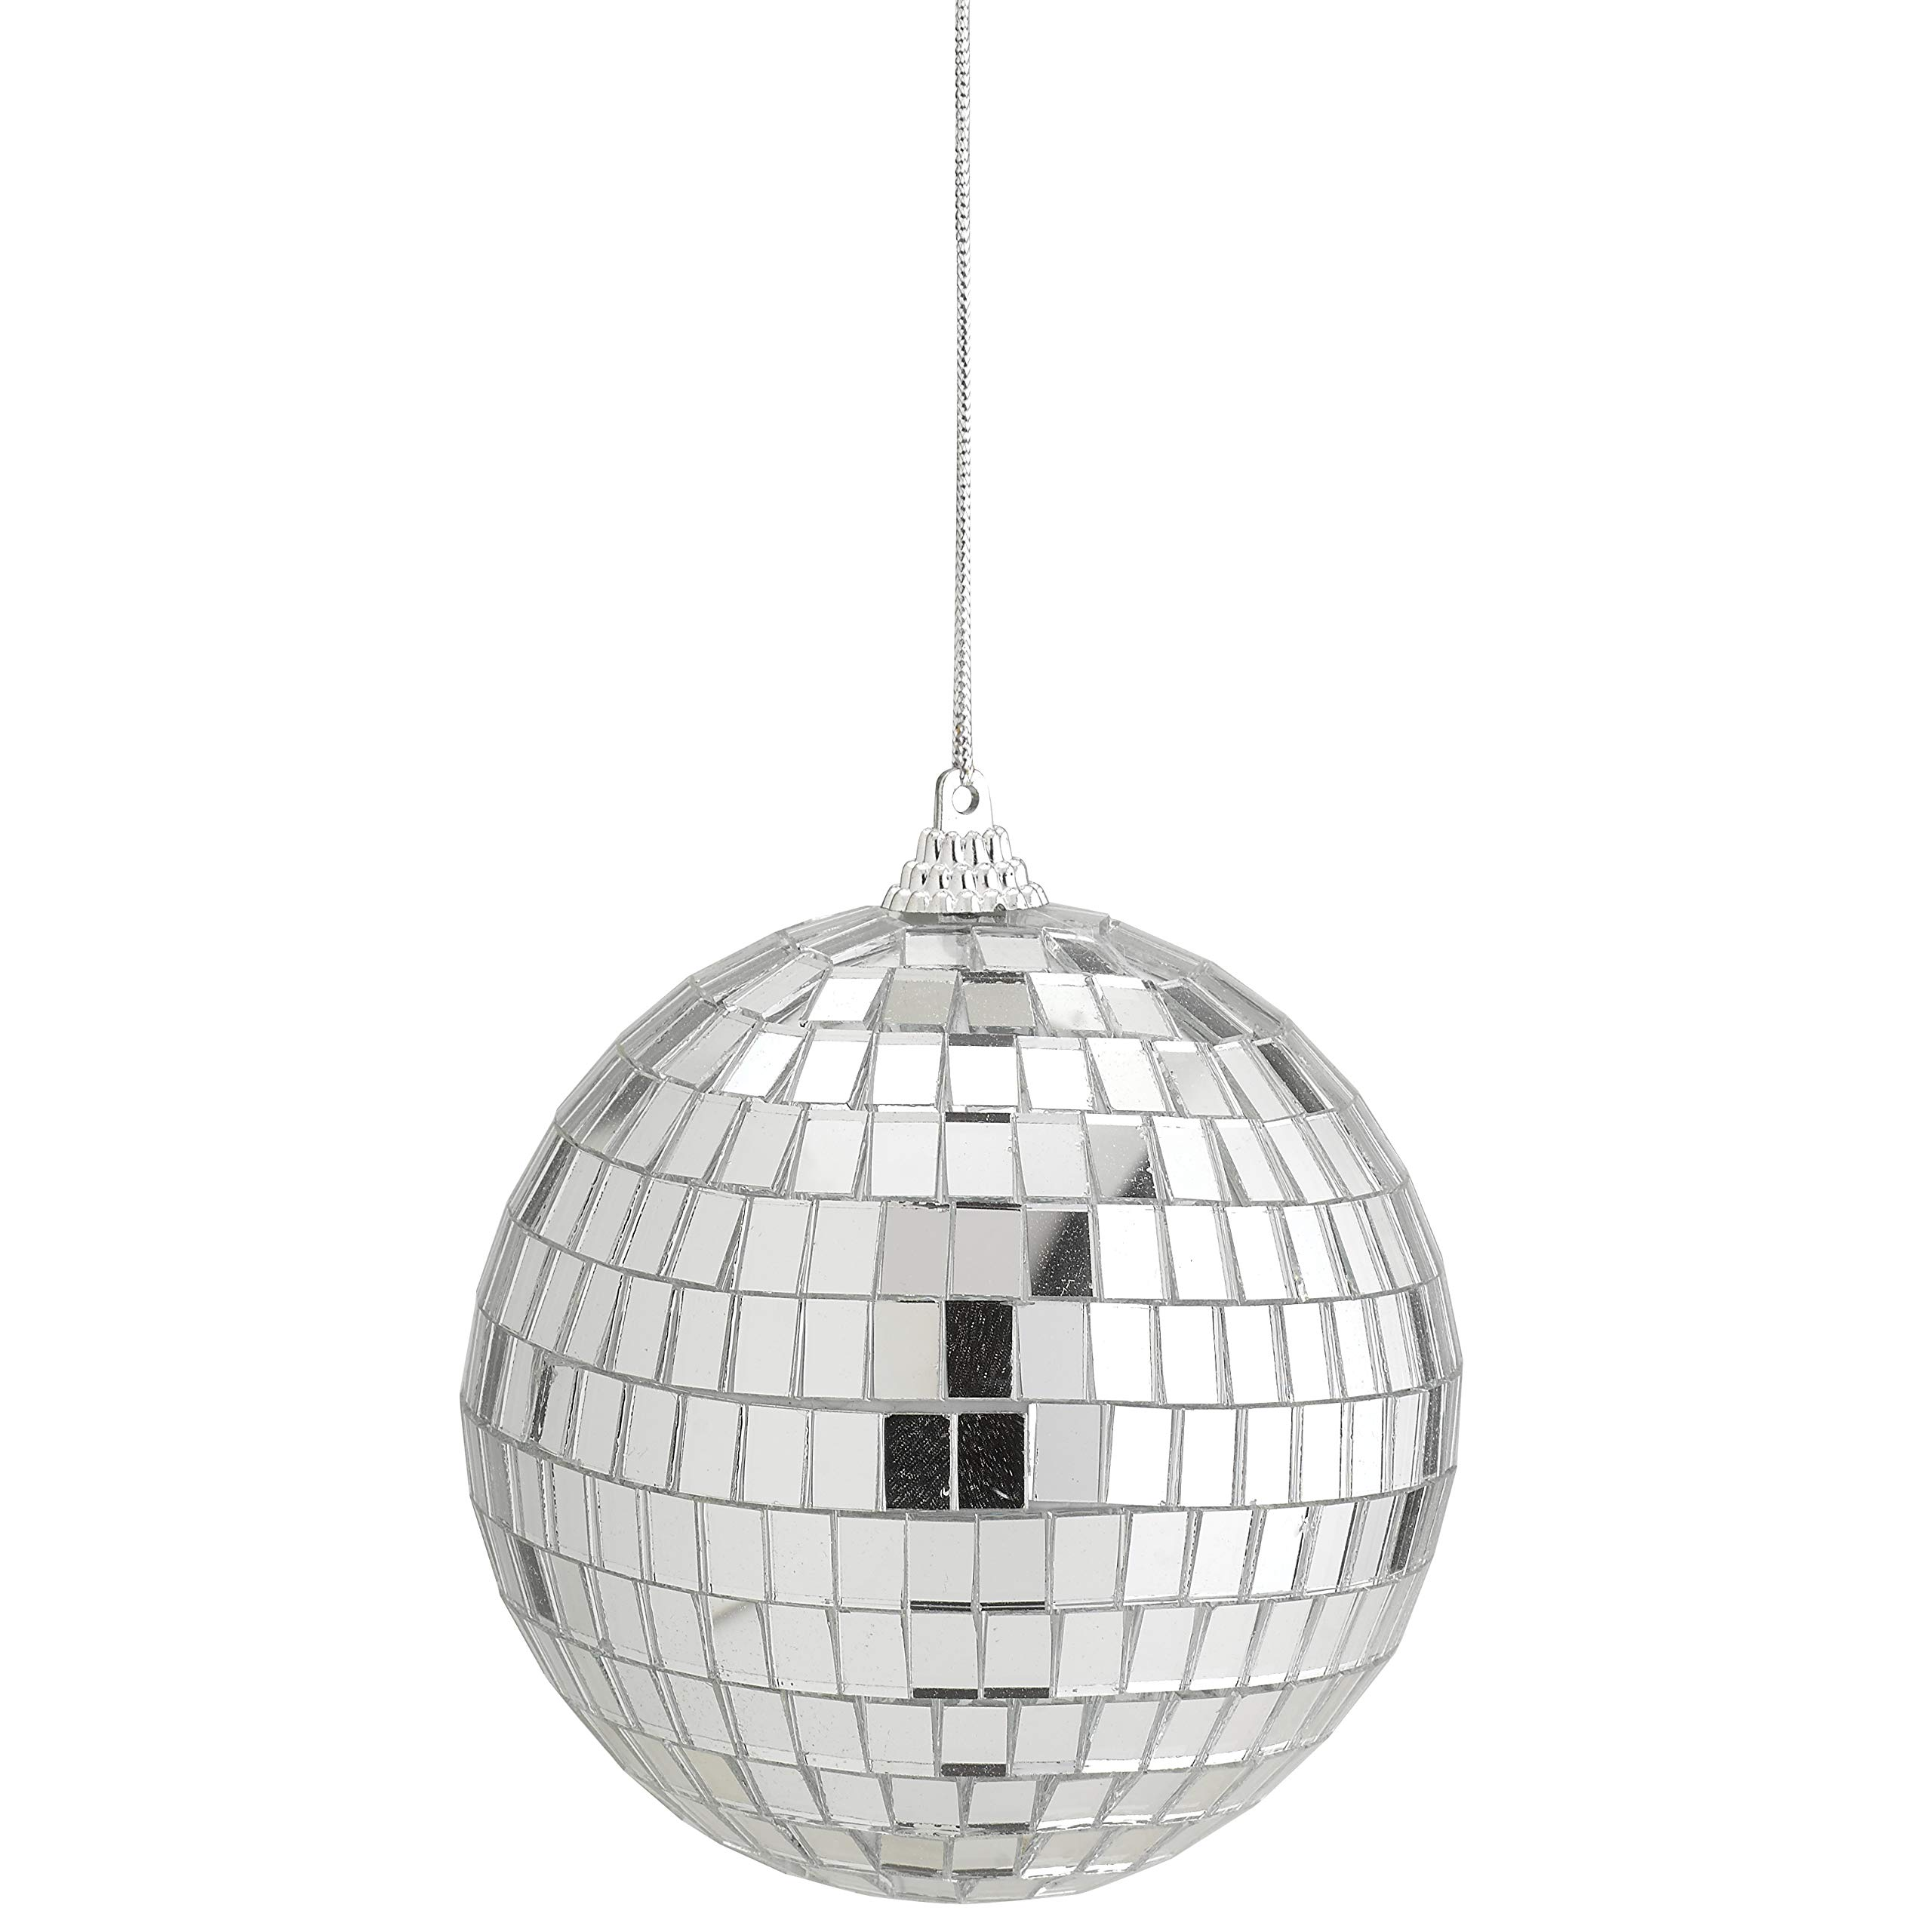 4'' Mirror Disco Lights - Silver Hanging Ball - Perfect for Home Decorations, Stage Props, Game Accessories, School Festivals, Party Favor and Supplies